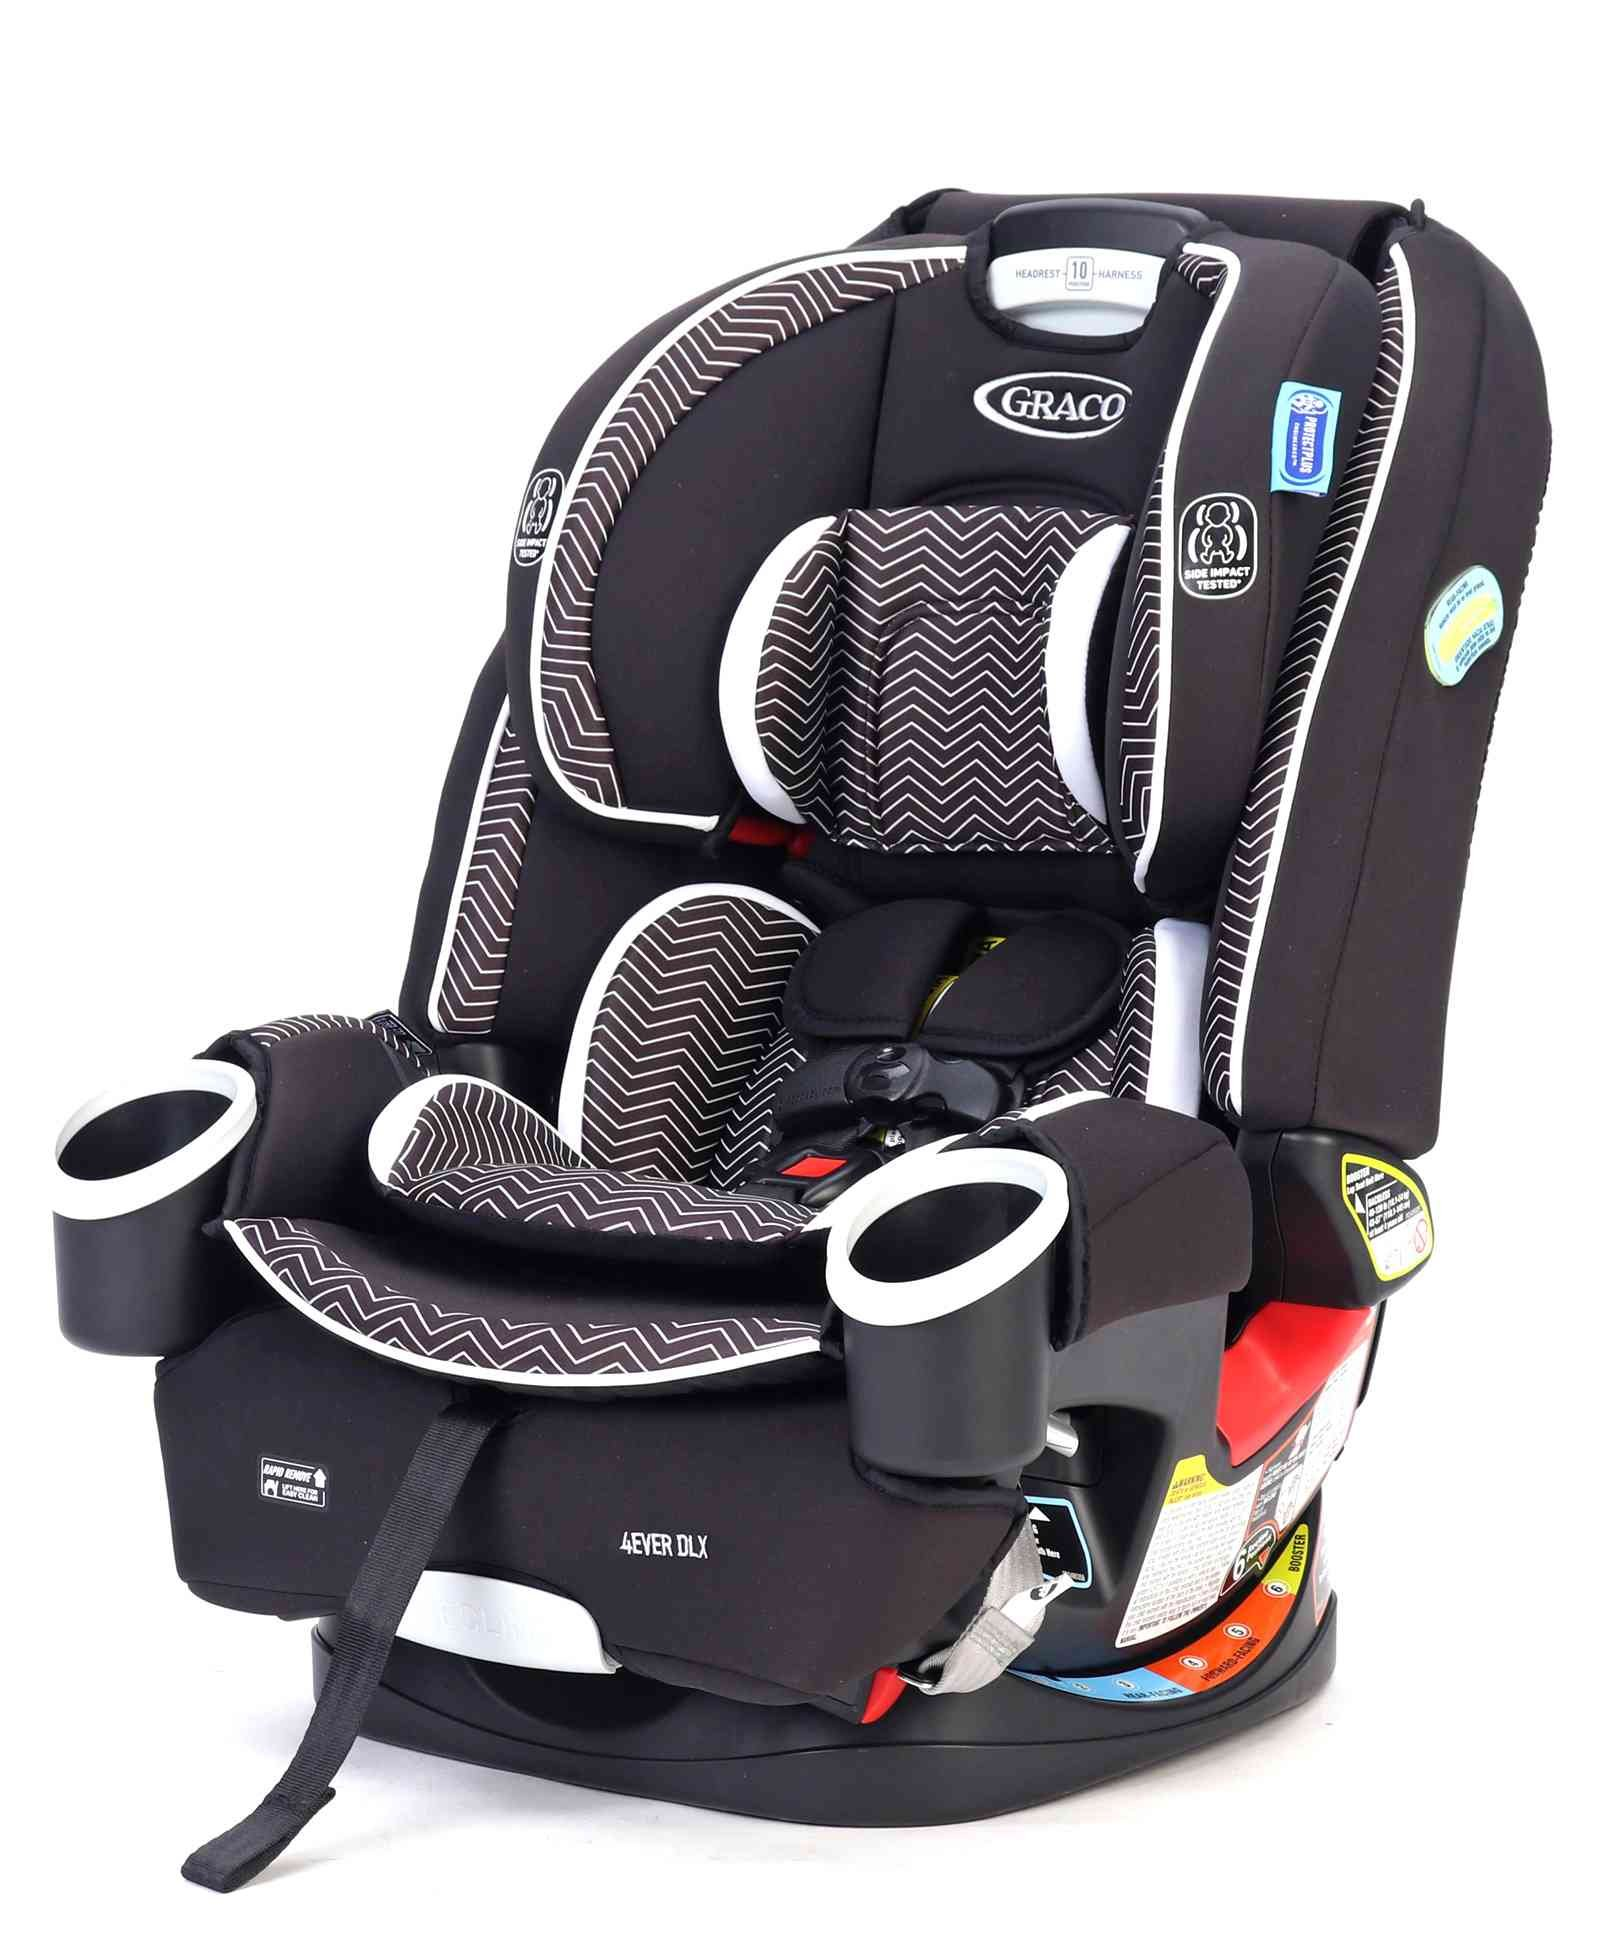 Graco Dlx 4 In 1 Car Seat Black Online In India Buy At Best Price From Firstcry Com 8329191